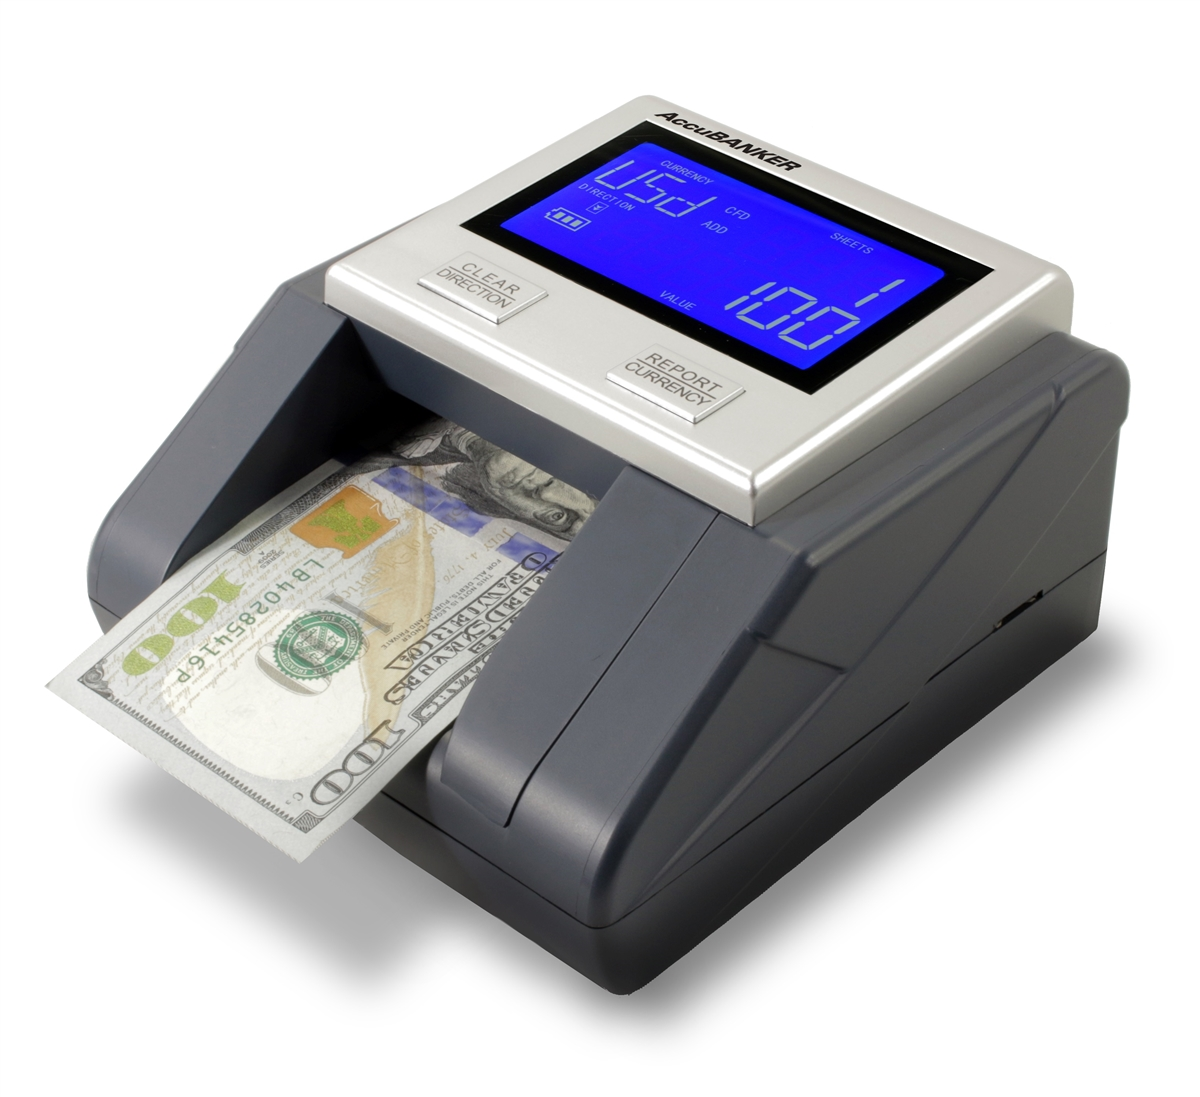 Multi-direction automatic counterfeit detector for 100/% US dollar banknote verification Safescan 185-S